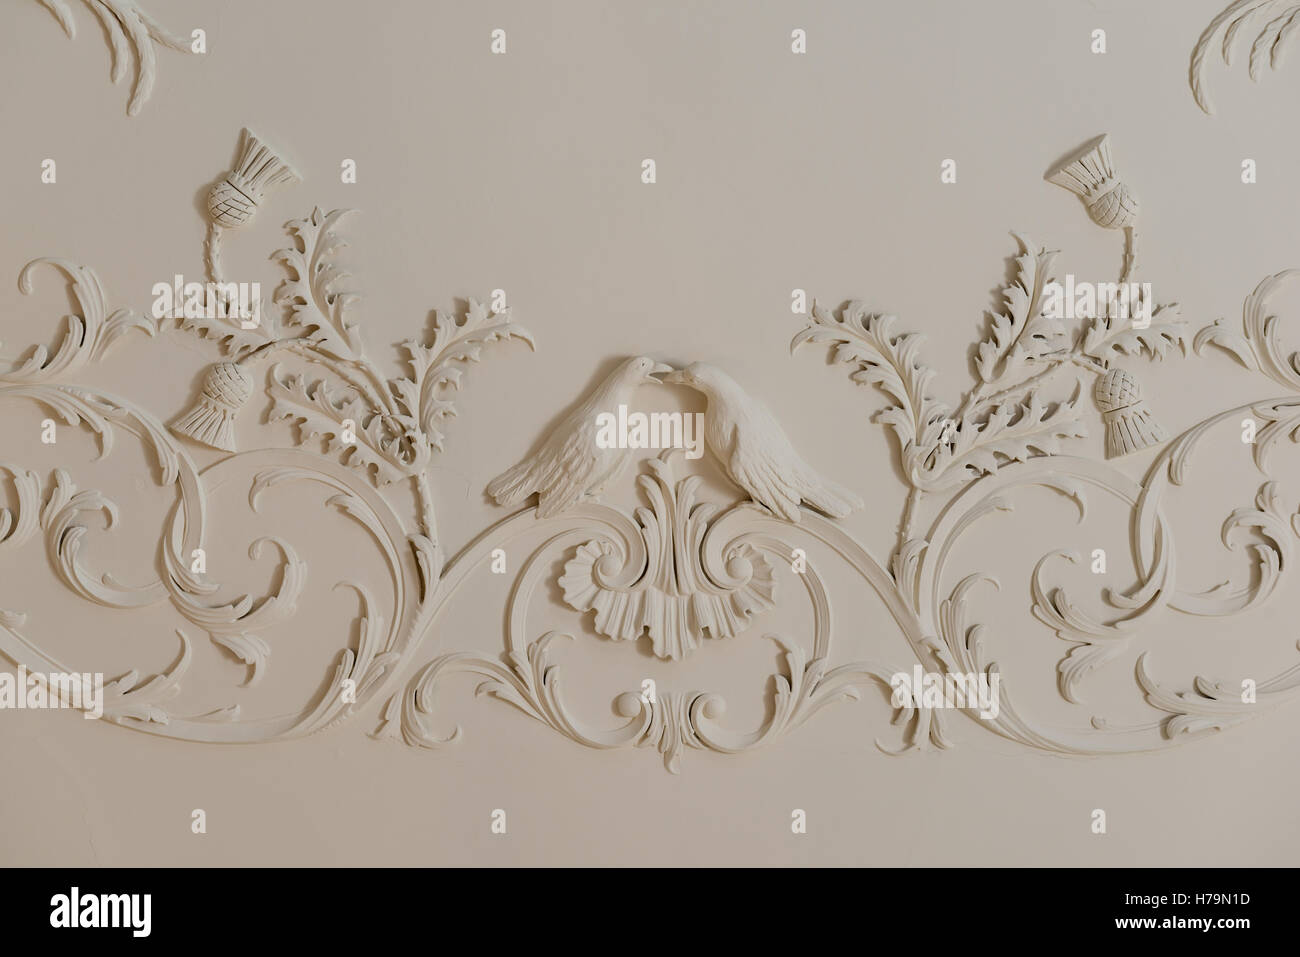 Platerwork detail of birs and thistles in 18th century Dumfries house, Ayrshire, Scotland - Stock Image